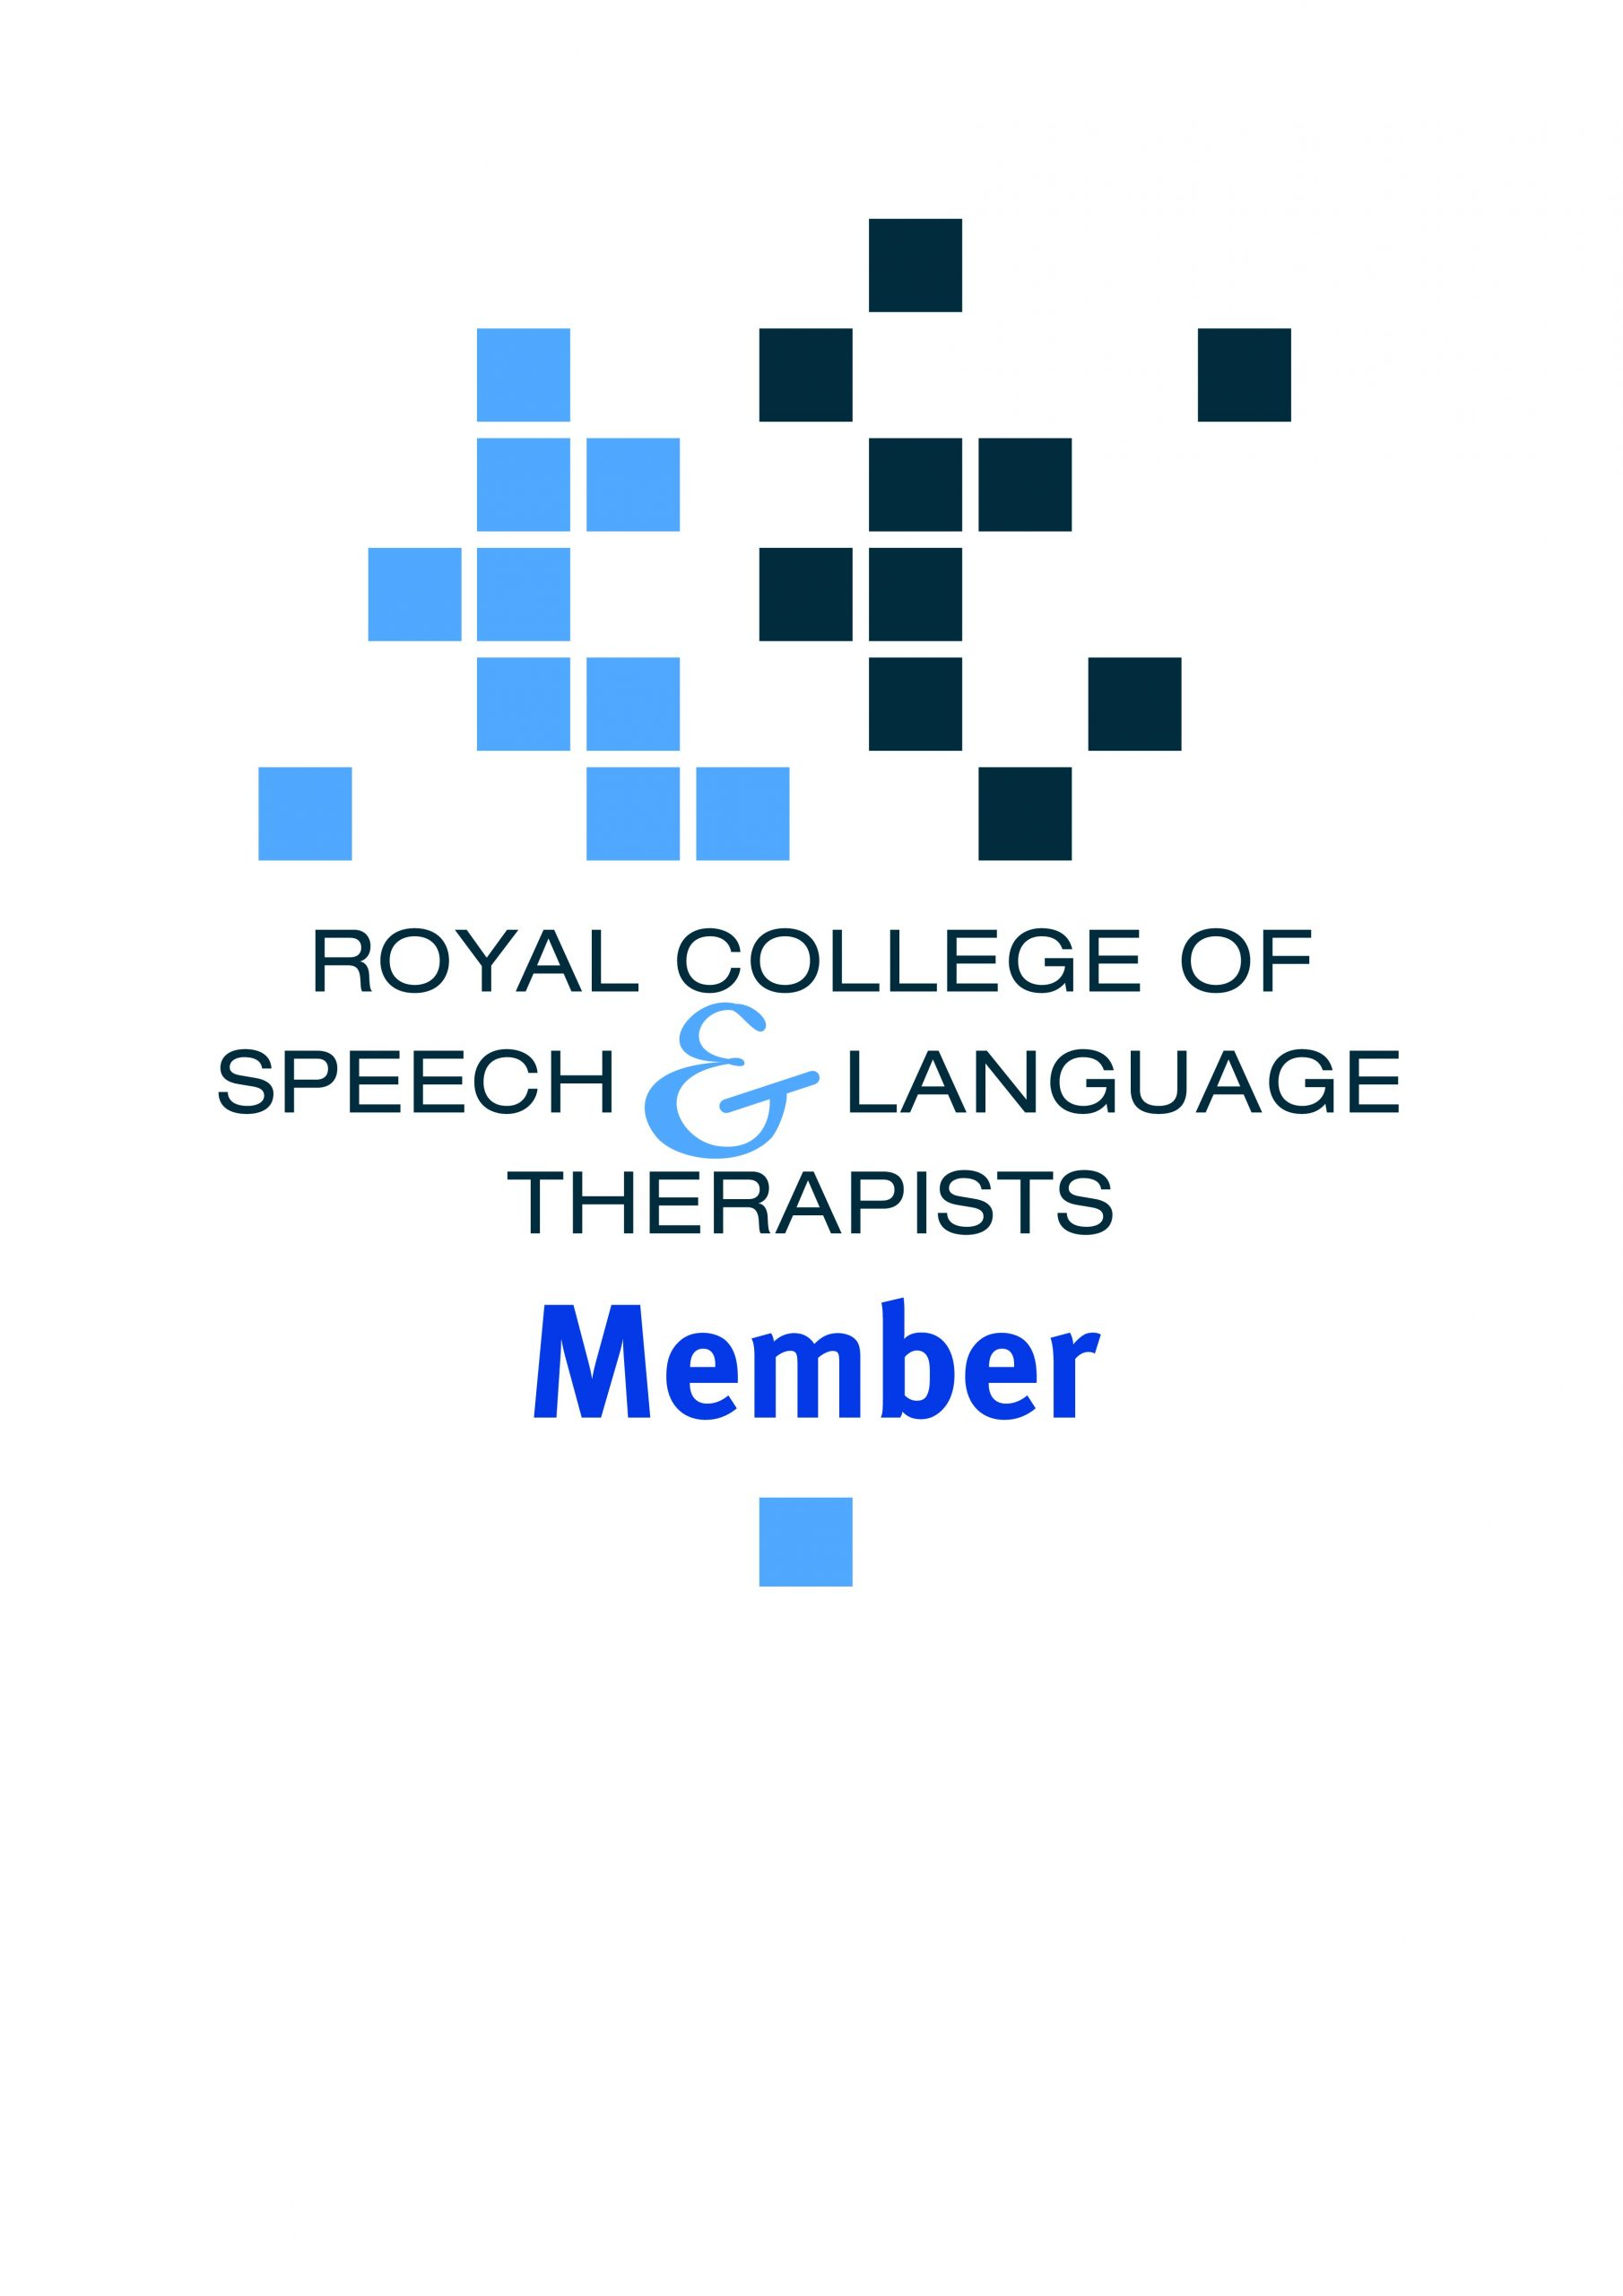 Royal College of Speech and Language Therapists Member